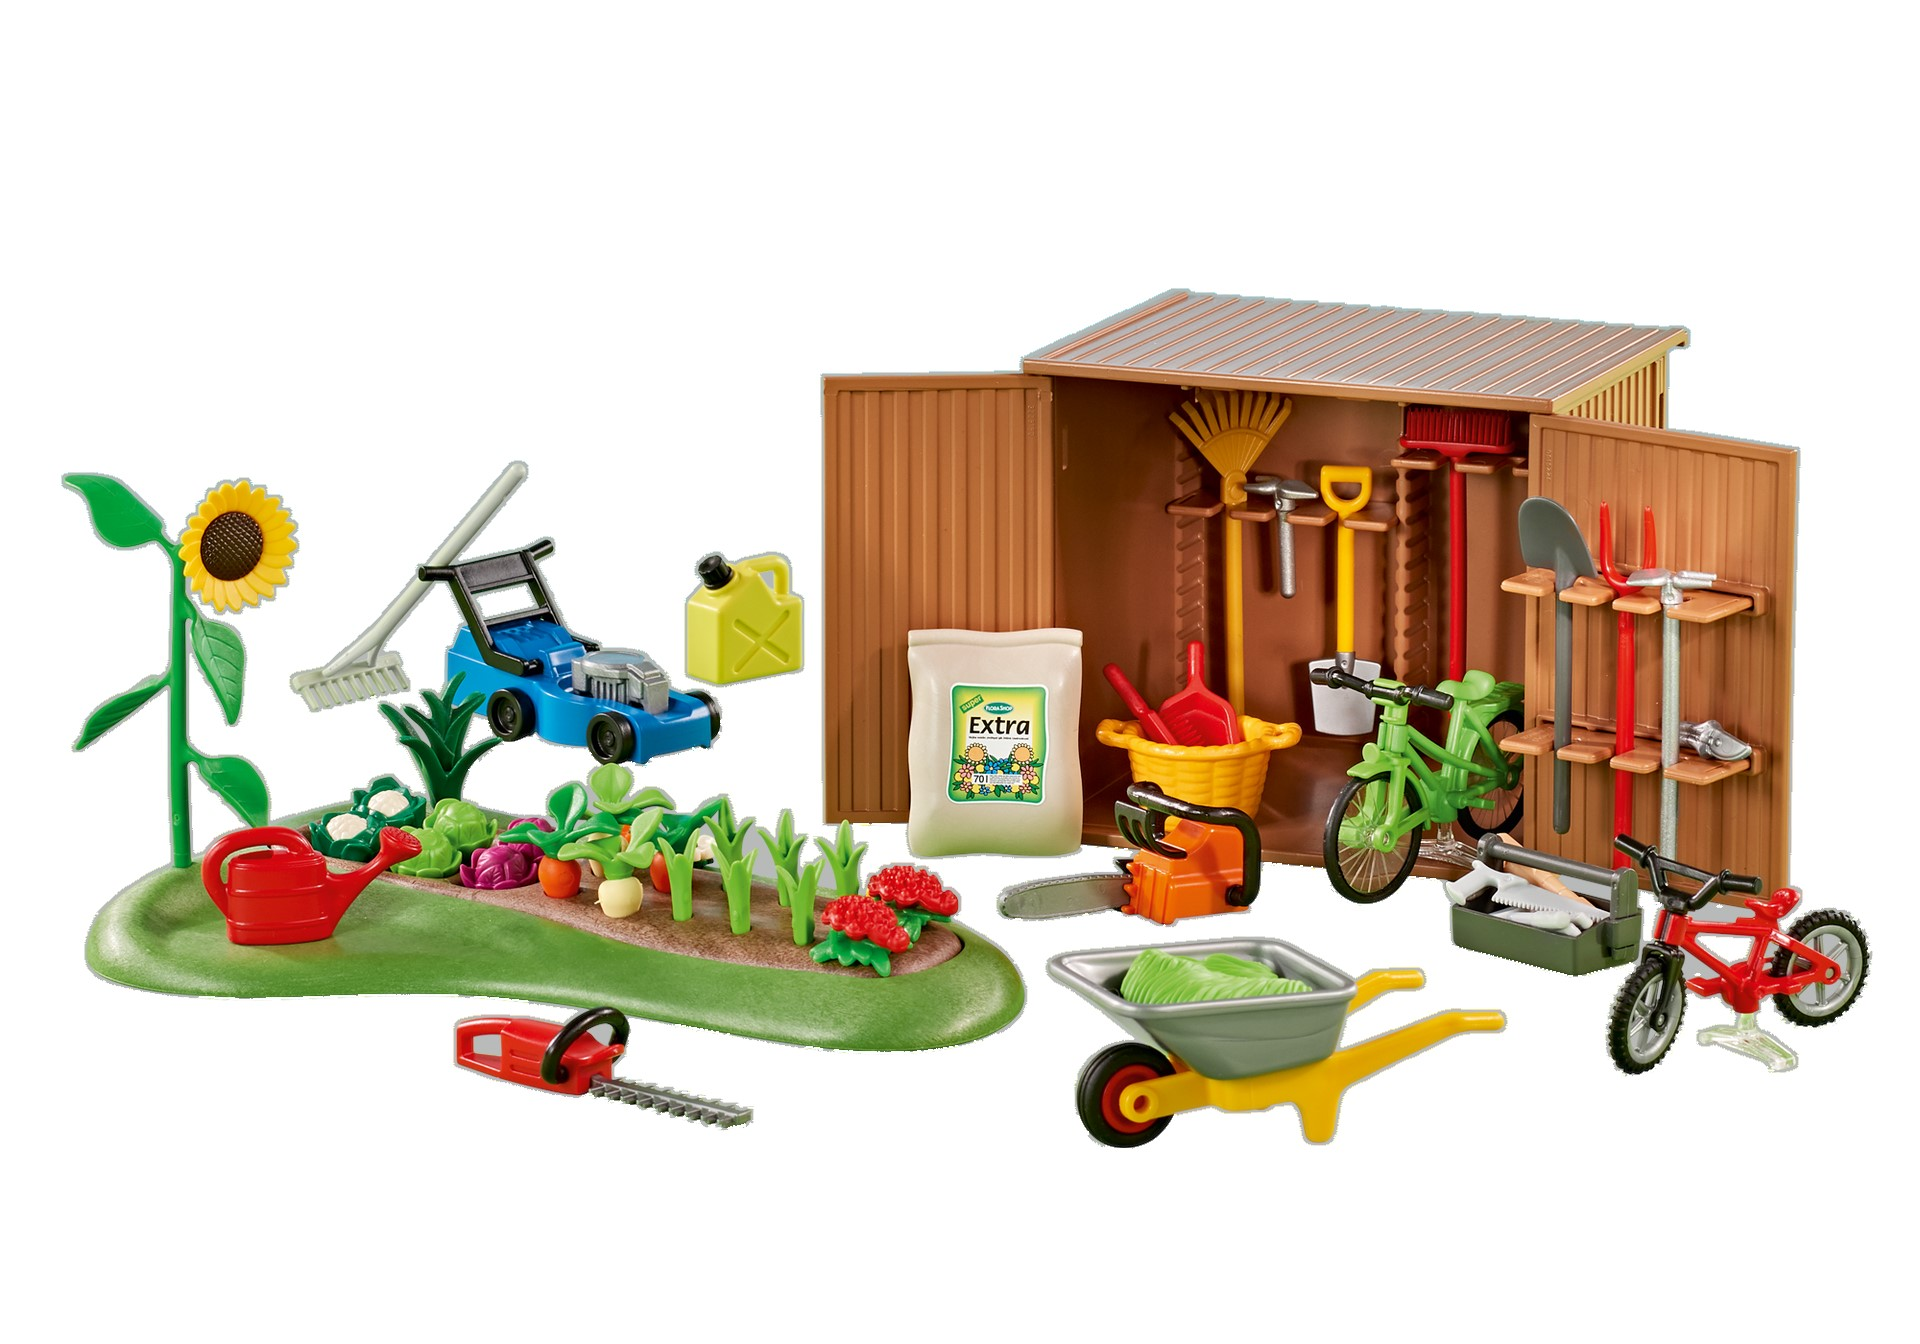 Playmobil Add On #6558 Tool Shed with Garden - New Factory Sealed